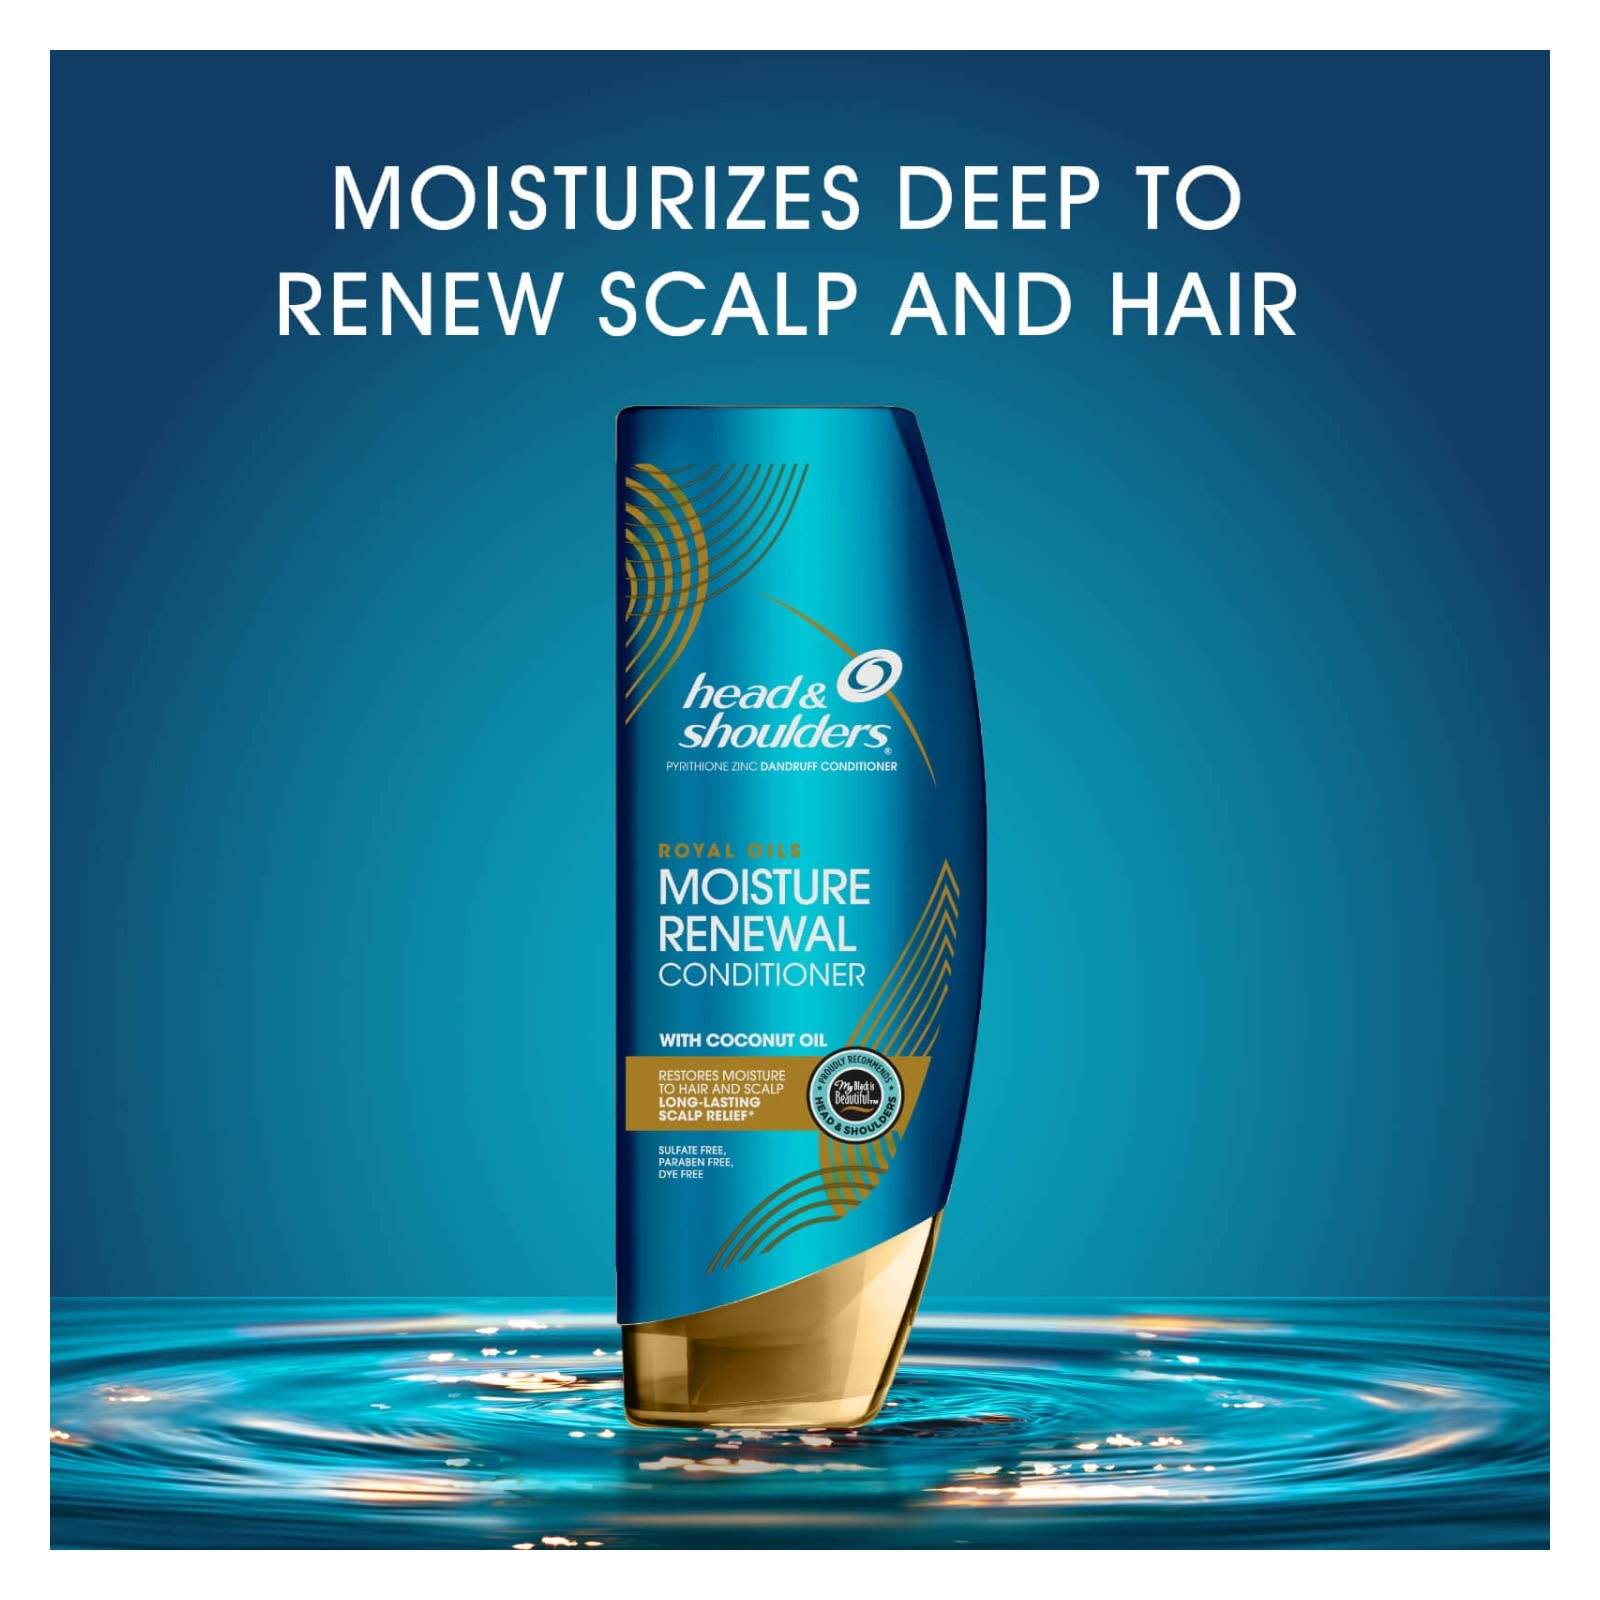 Royal Oils Moisture Renewal Conditioner